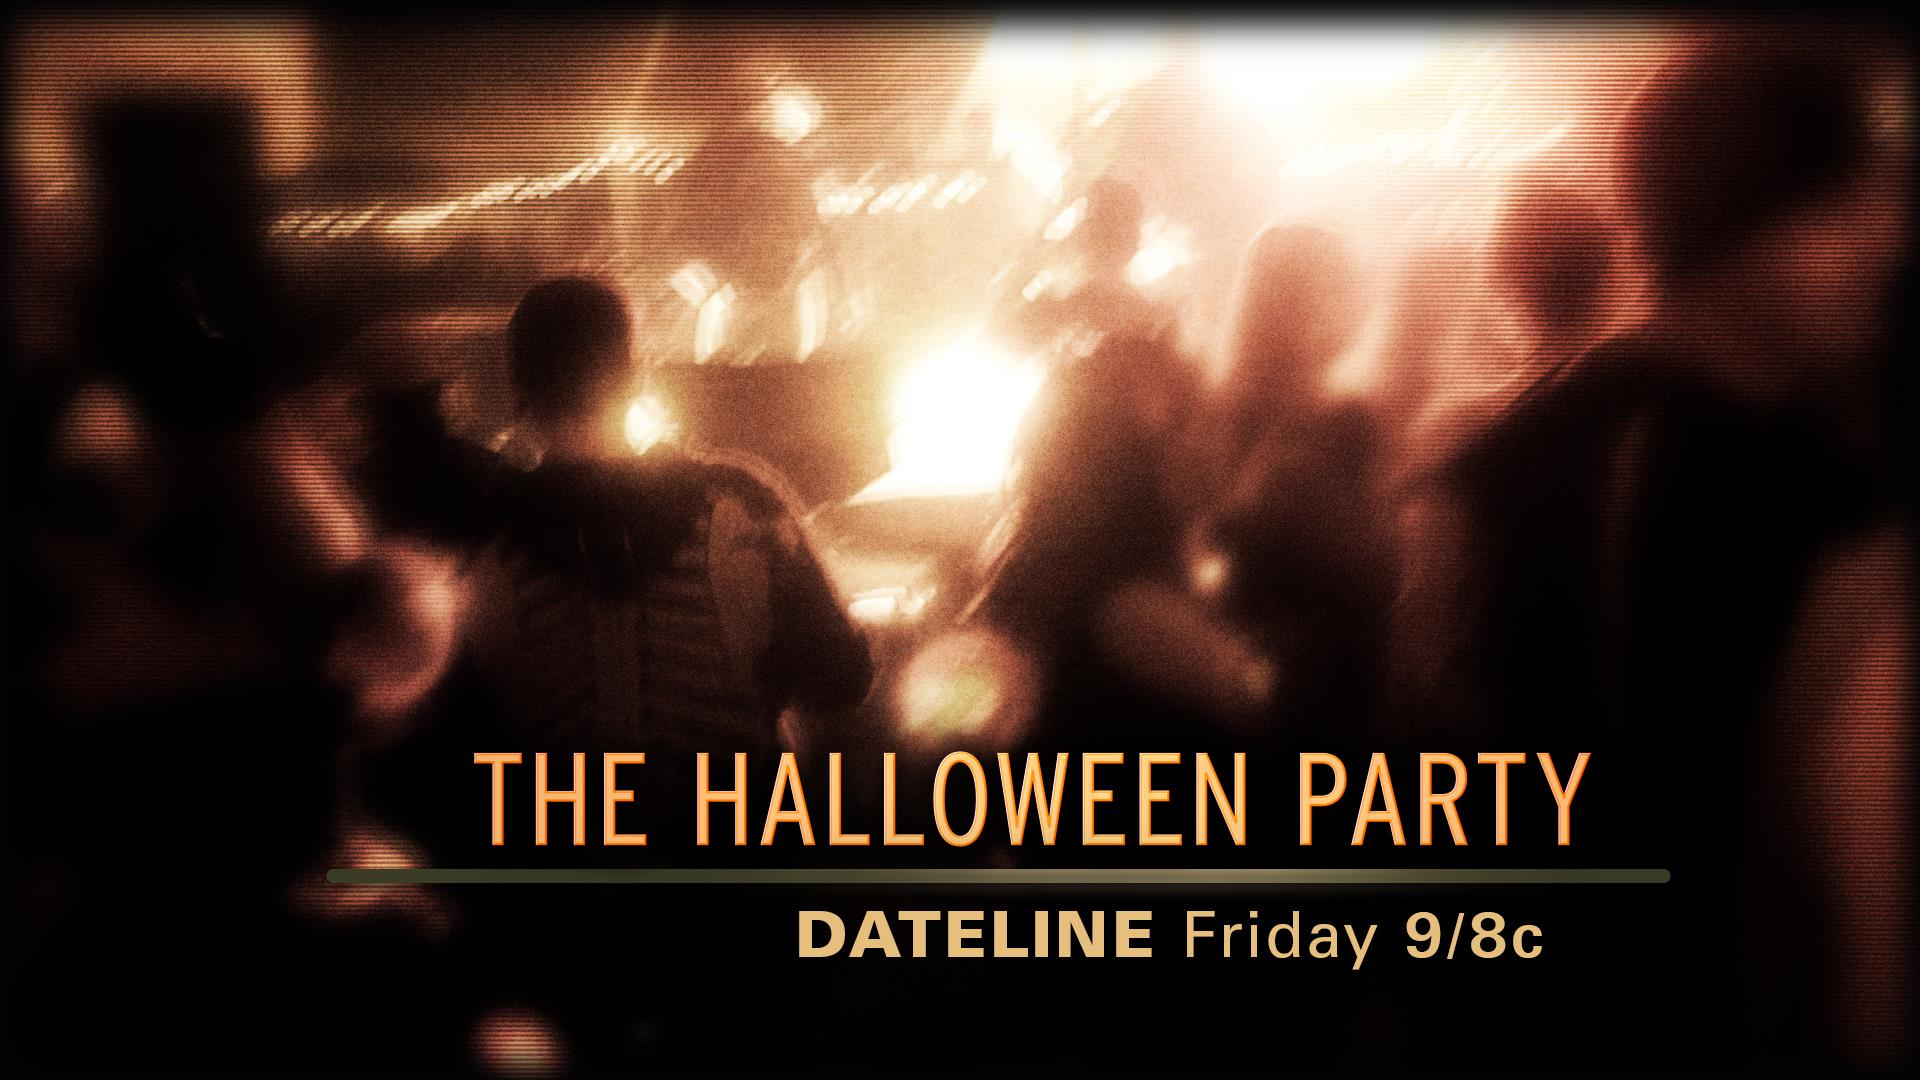 DATELINE FRIDAY PREVIEW: The Halloween Party - NBC News